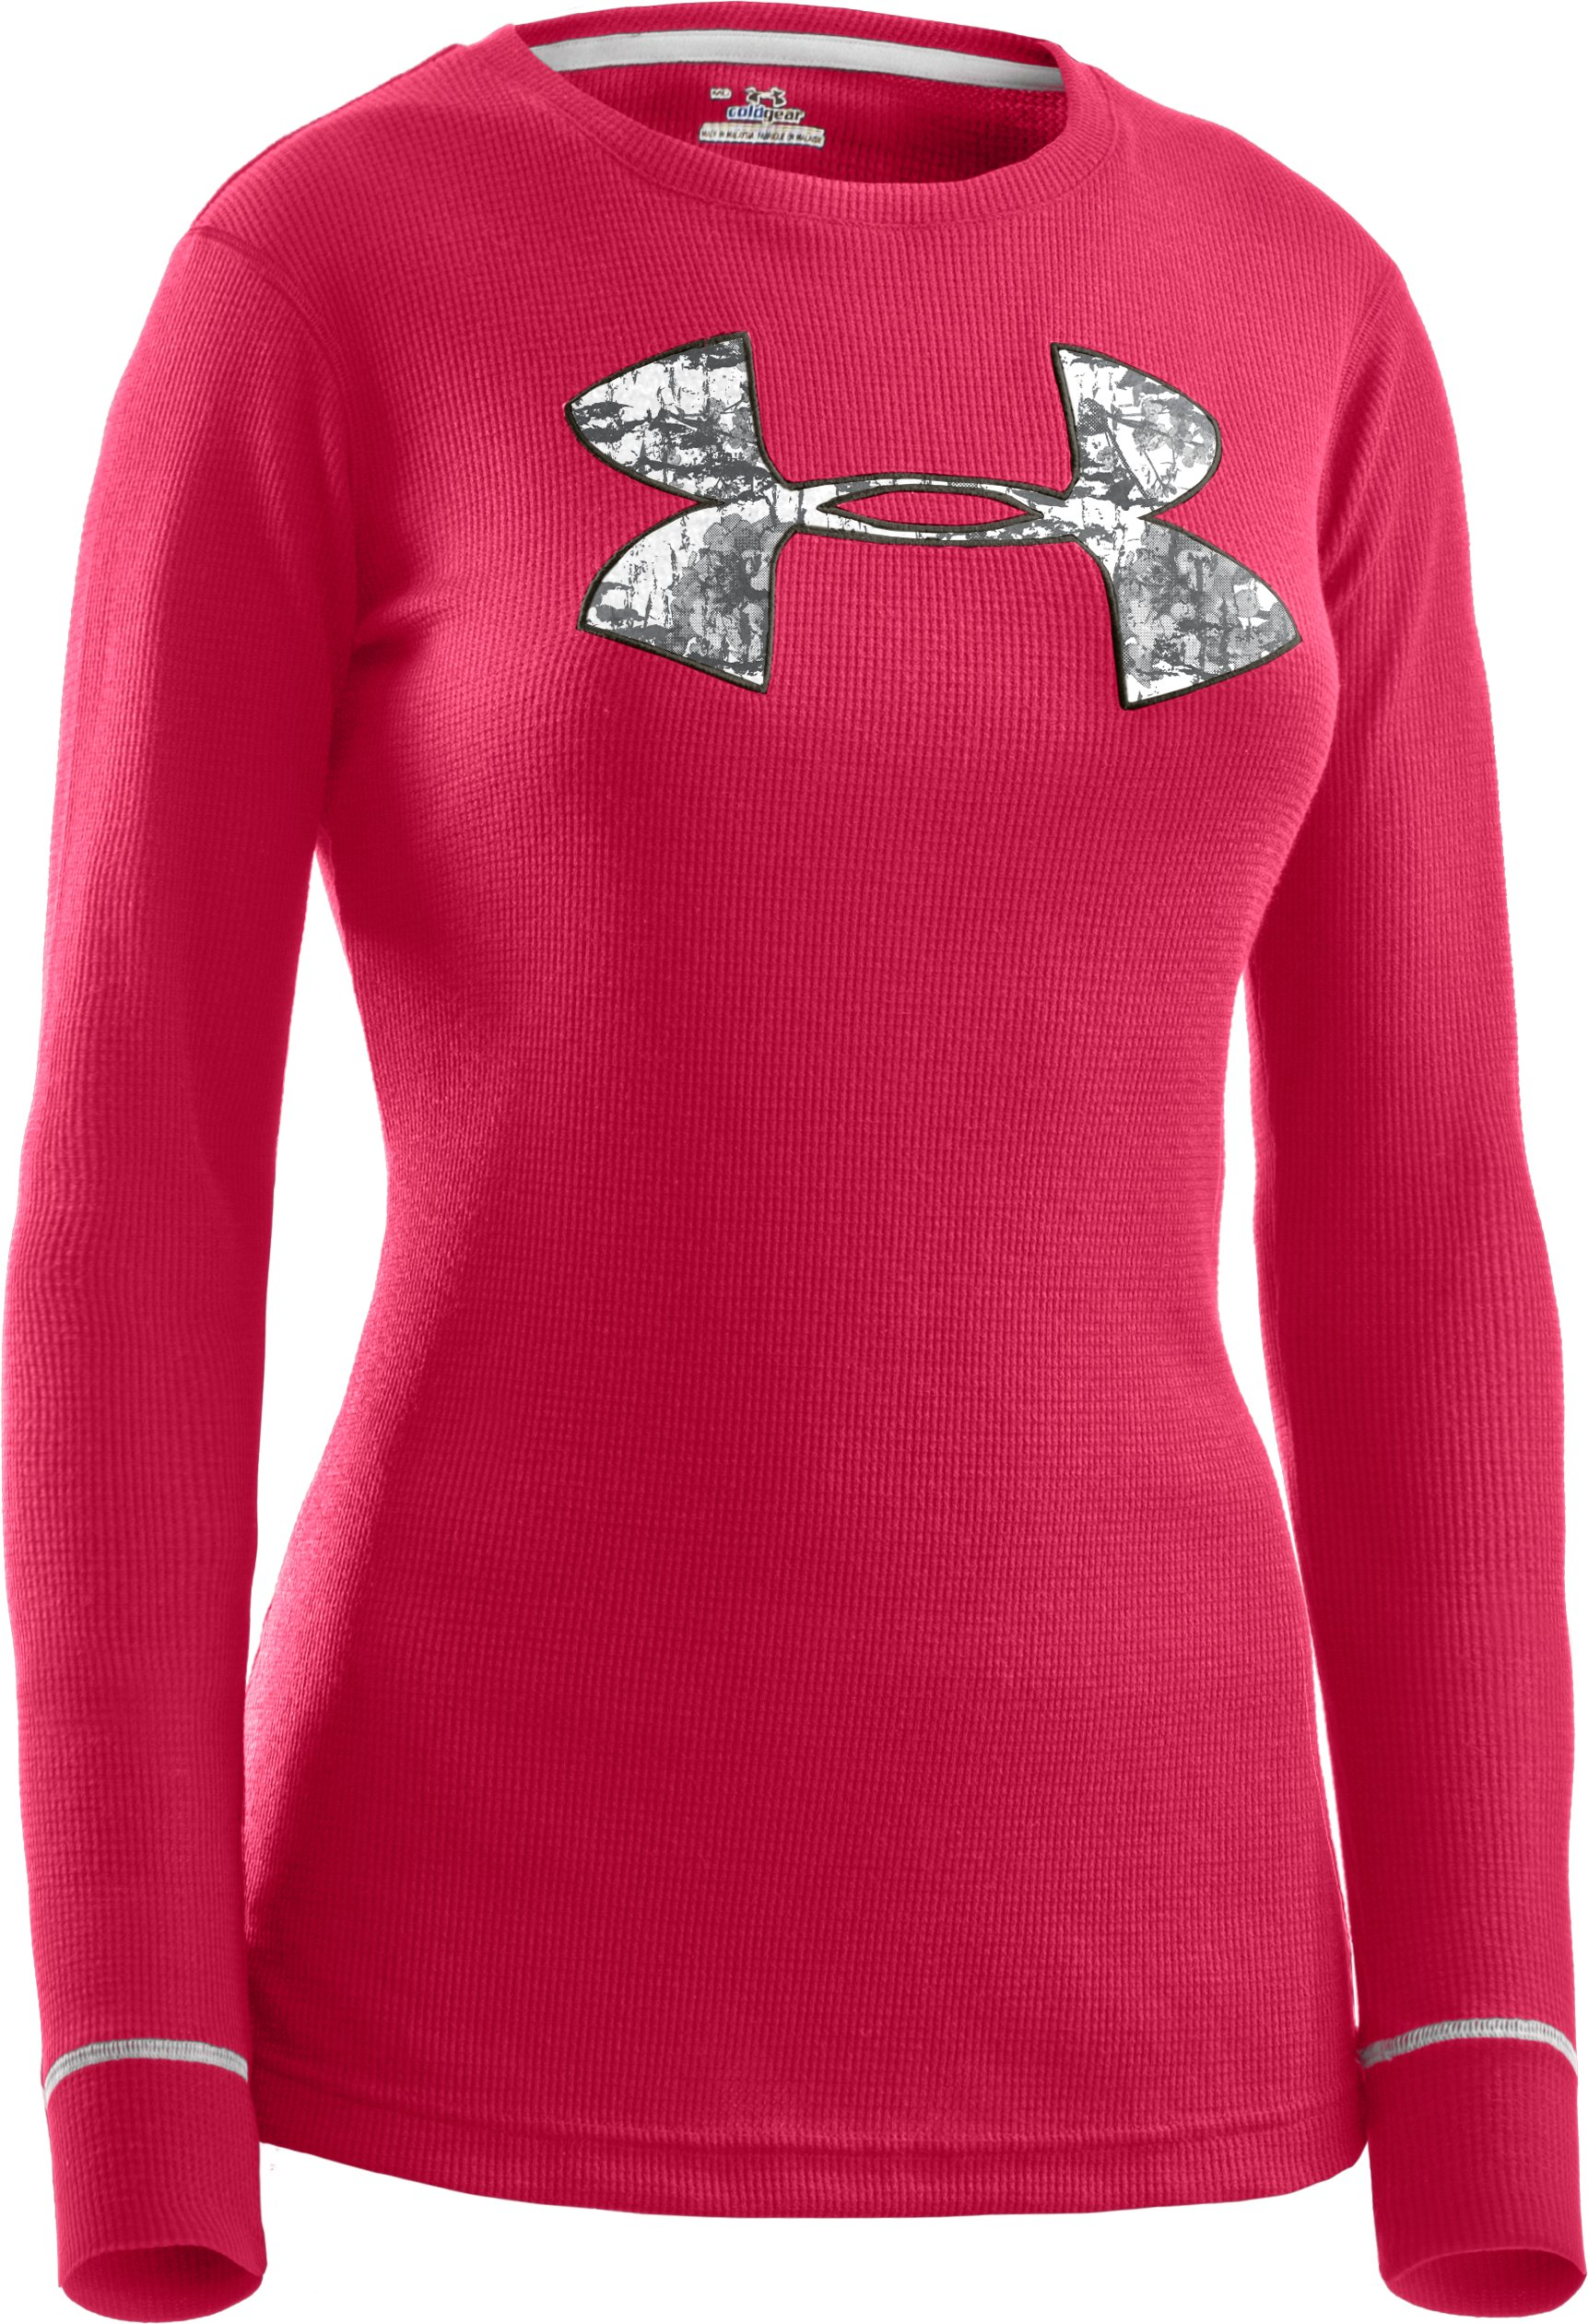 Women's Waffle Tackle Twill Long Sleeve Crew, Perfection, undefined